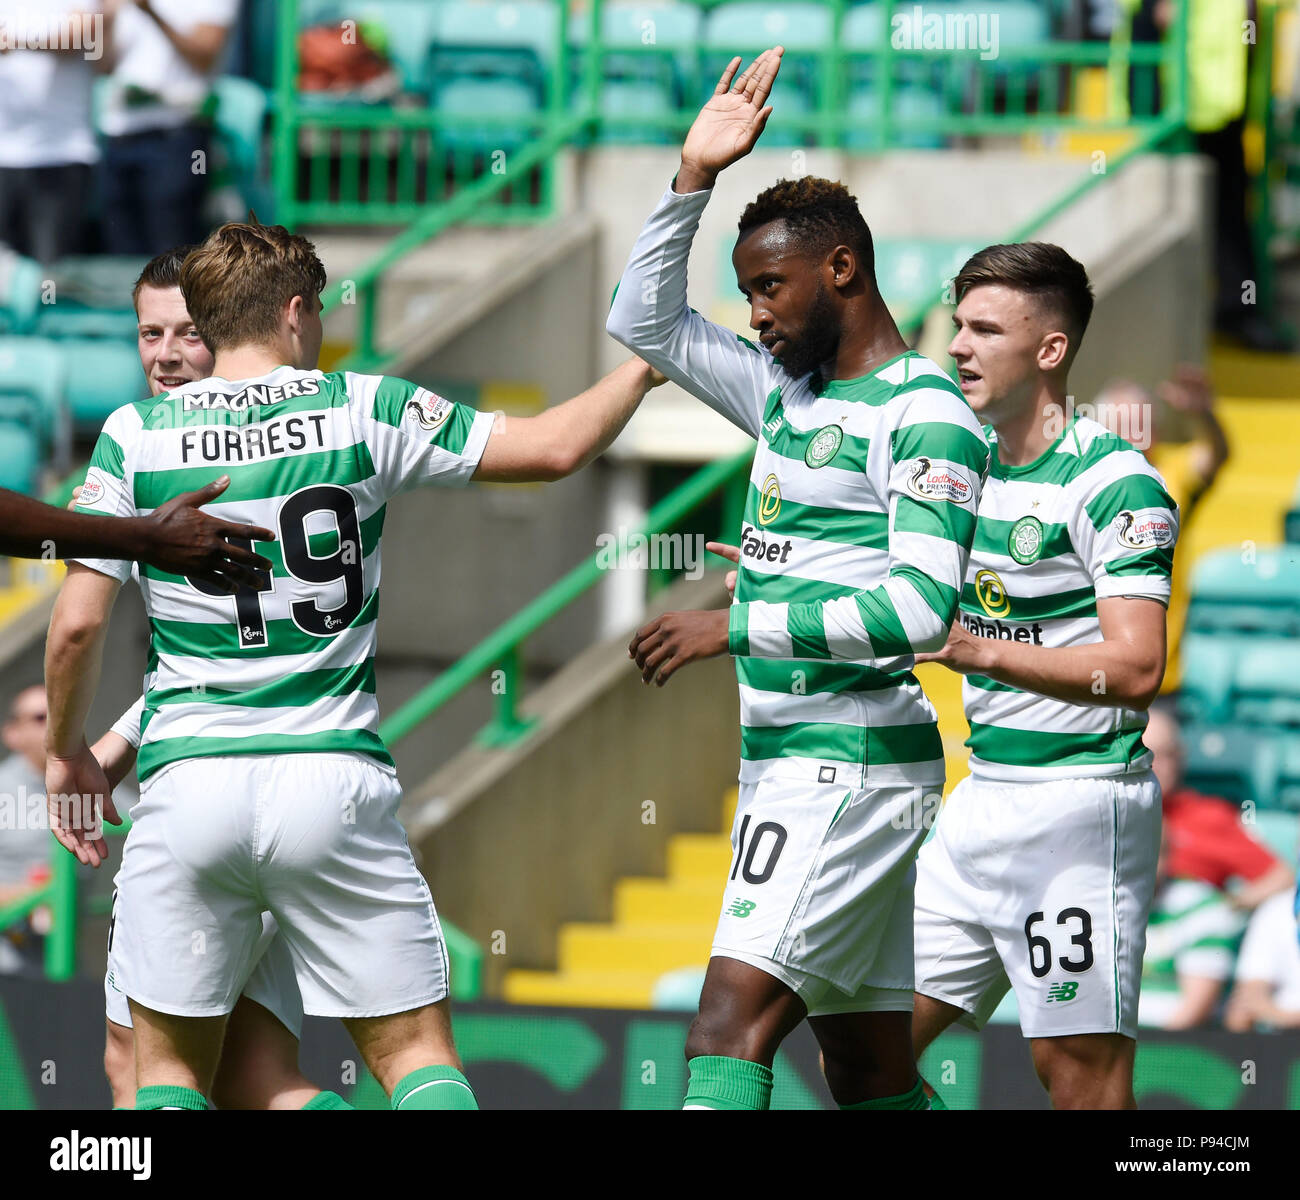 Celtic's Moussa Dembele celebrates with team mates Celtic's James Forrest and Celtic's Kieran Tierney after scoring the second goal during the pre-season match at Celtic Park, Glasgow. - Stock Image